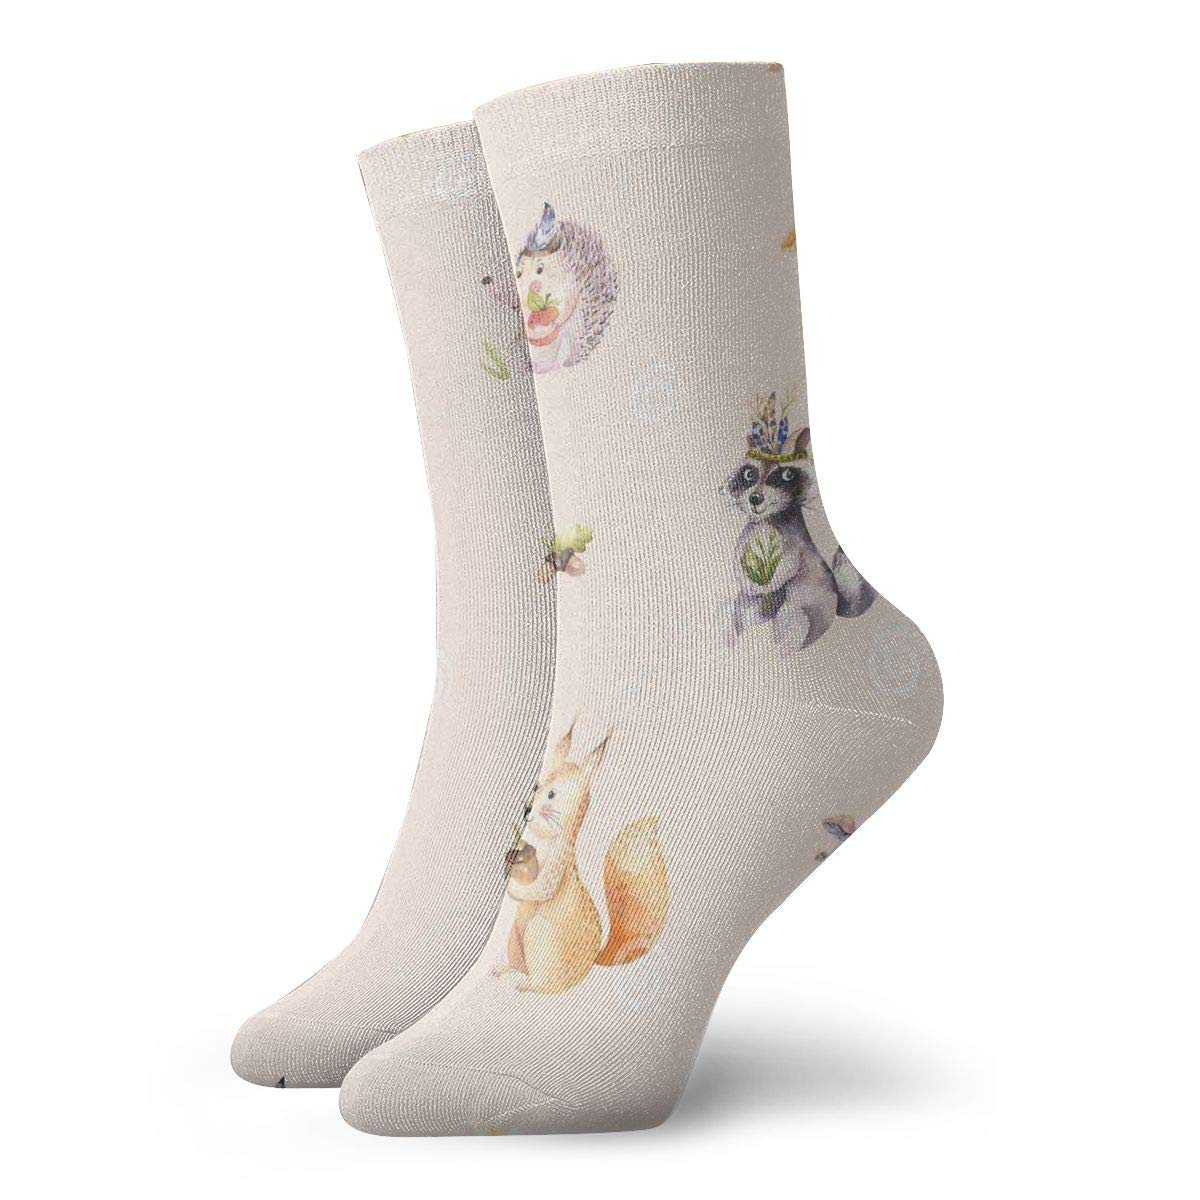 Cute Baby French Bulldog Pattern Casual Cotton Socks Unisex Sports Socks.